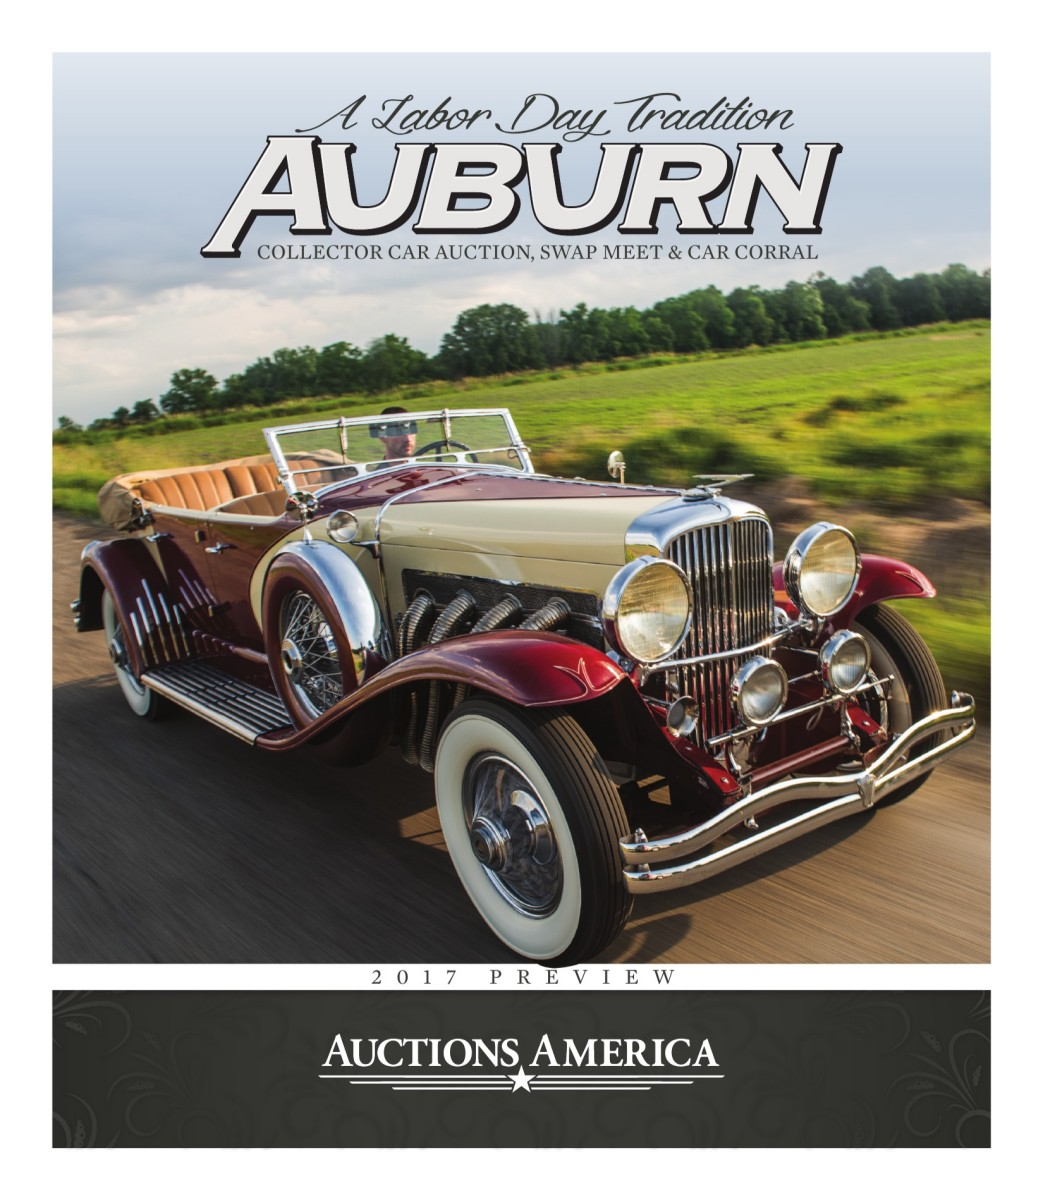 2017 Auburn Fall Digital Newspaper Auctions America Window Lift Wiring Diagram For 1956 Studebaker Passenger Car 4 Door Sedans Models